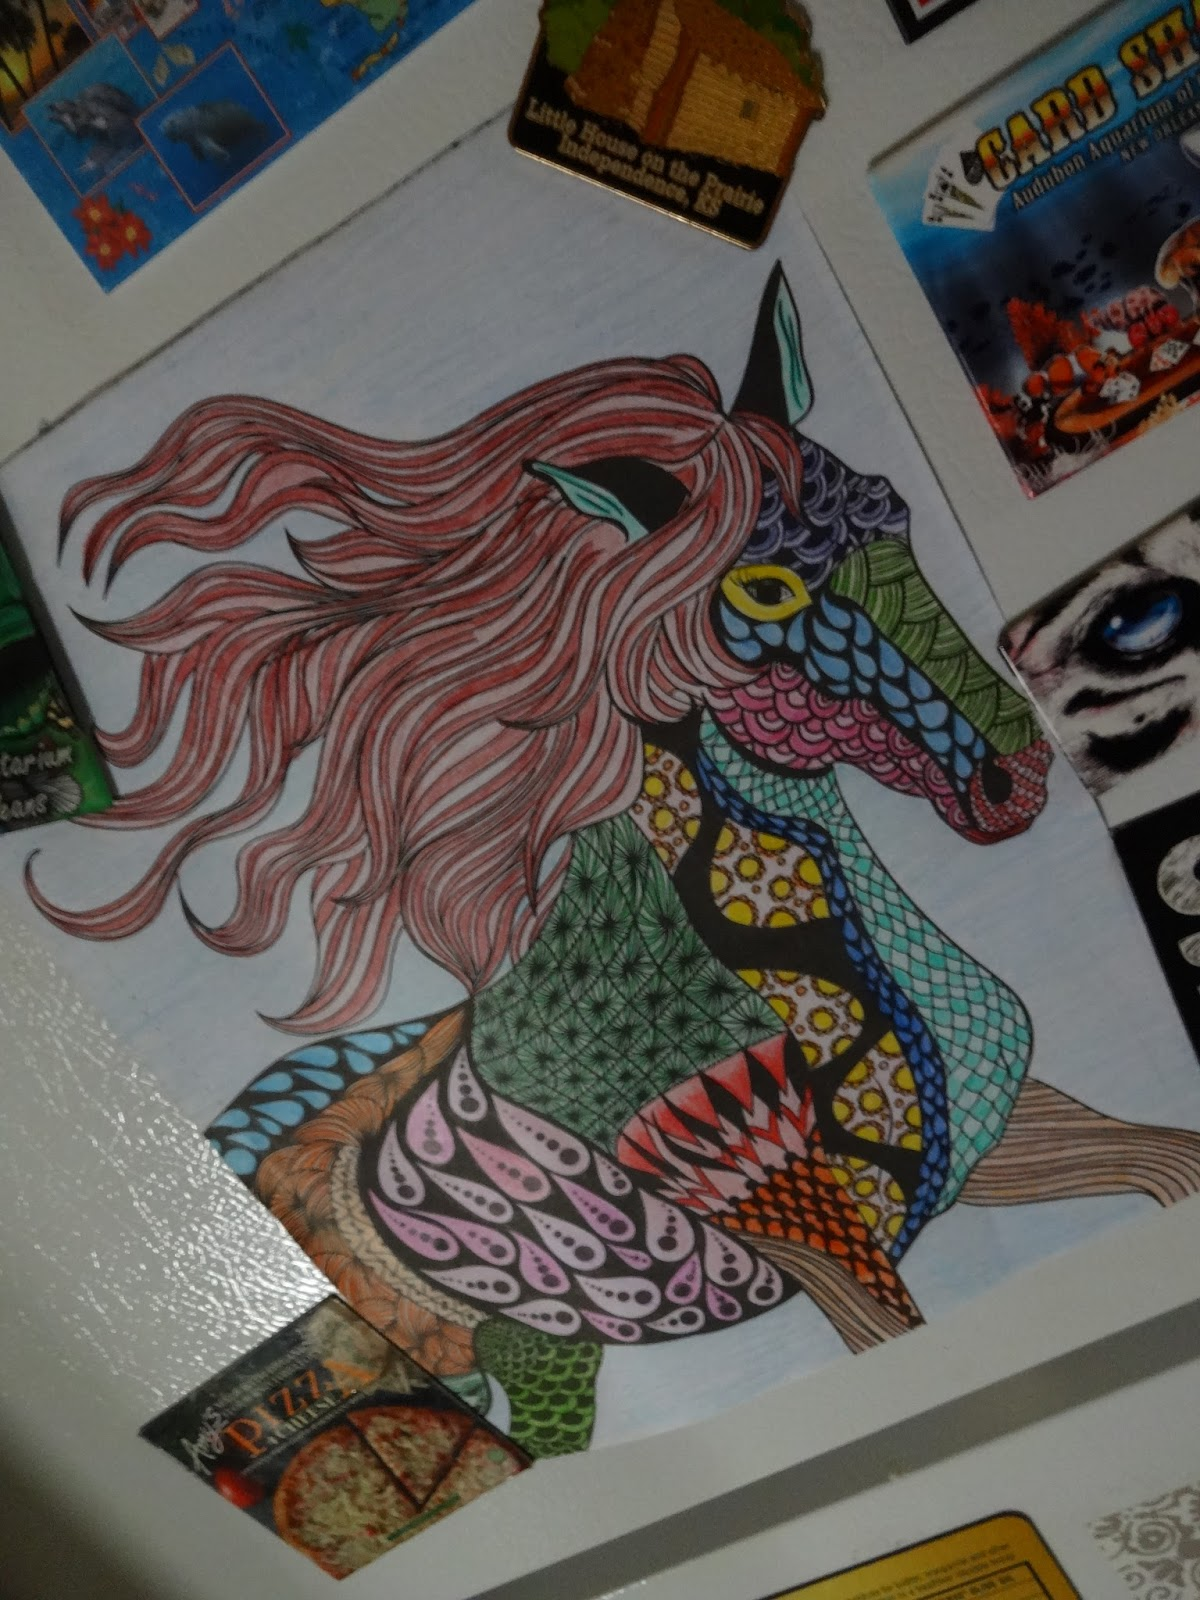 Color art living wonders - Color Art Living Wonders This Week I Have Been Coloring In Living Wonders Color Art